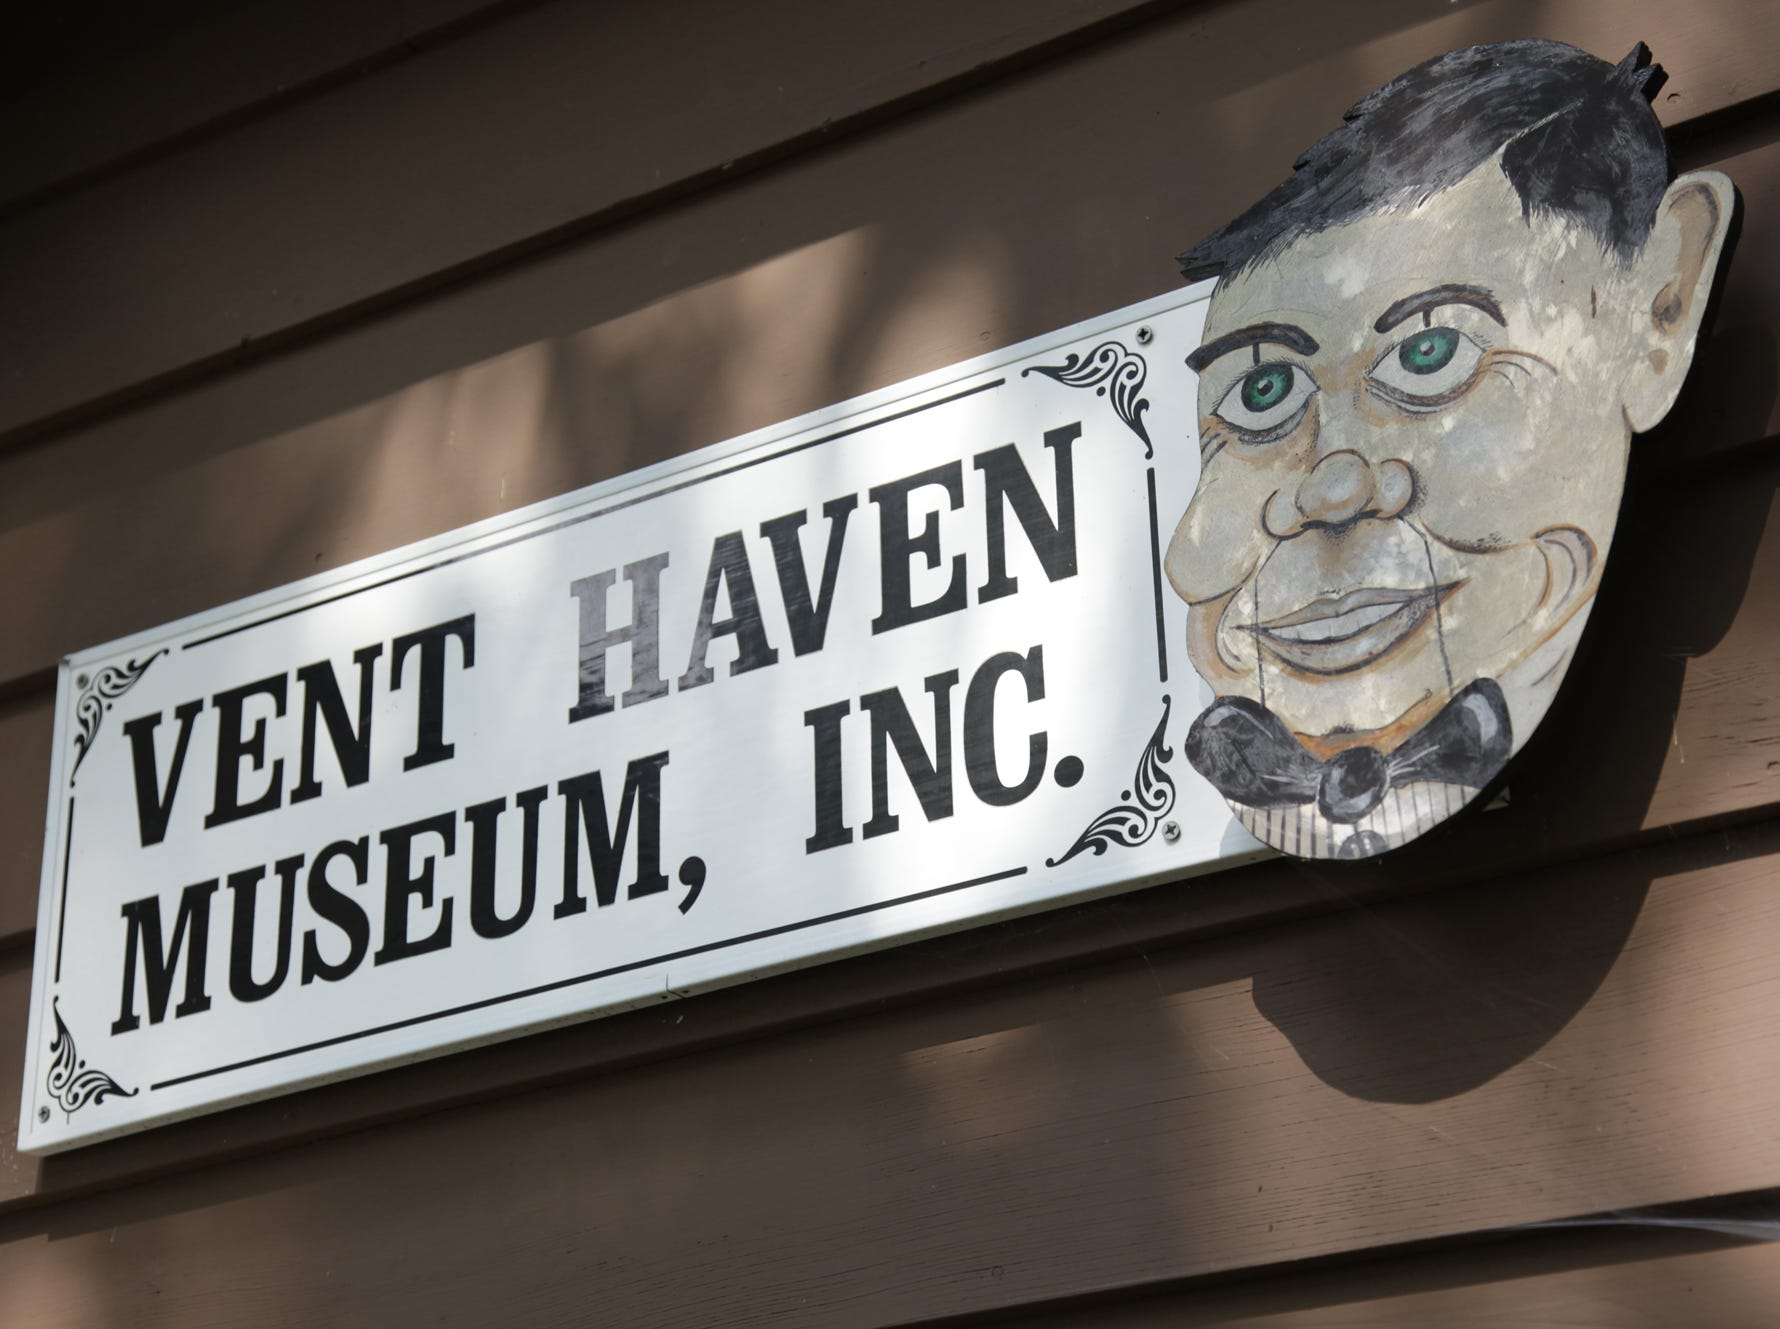 The Vent Haven Museum is located in Fort Mitchell.